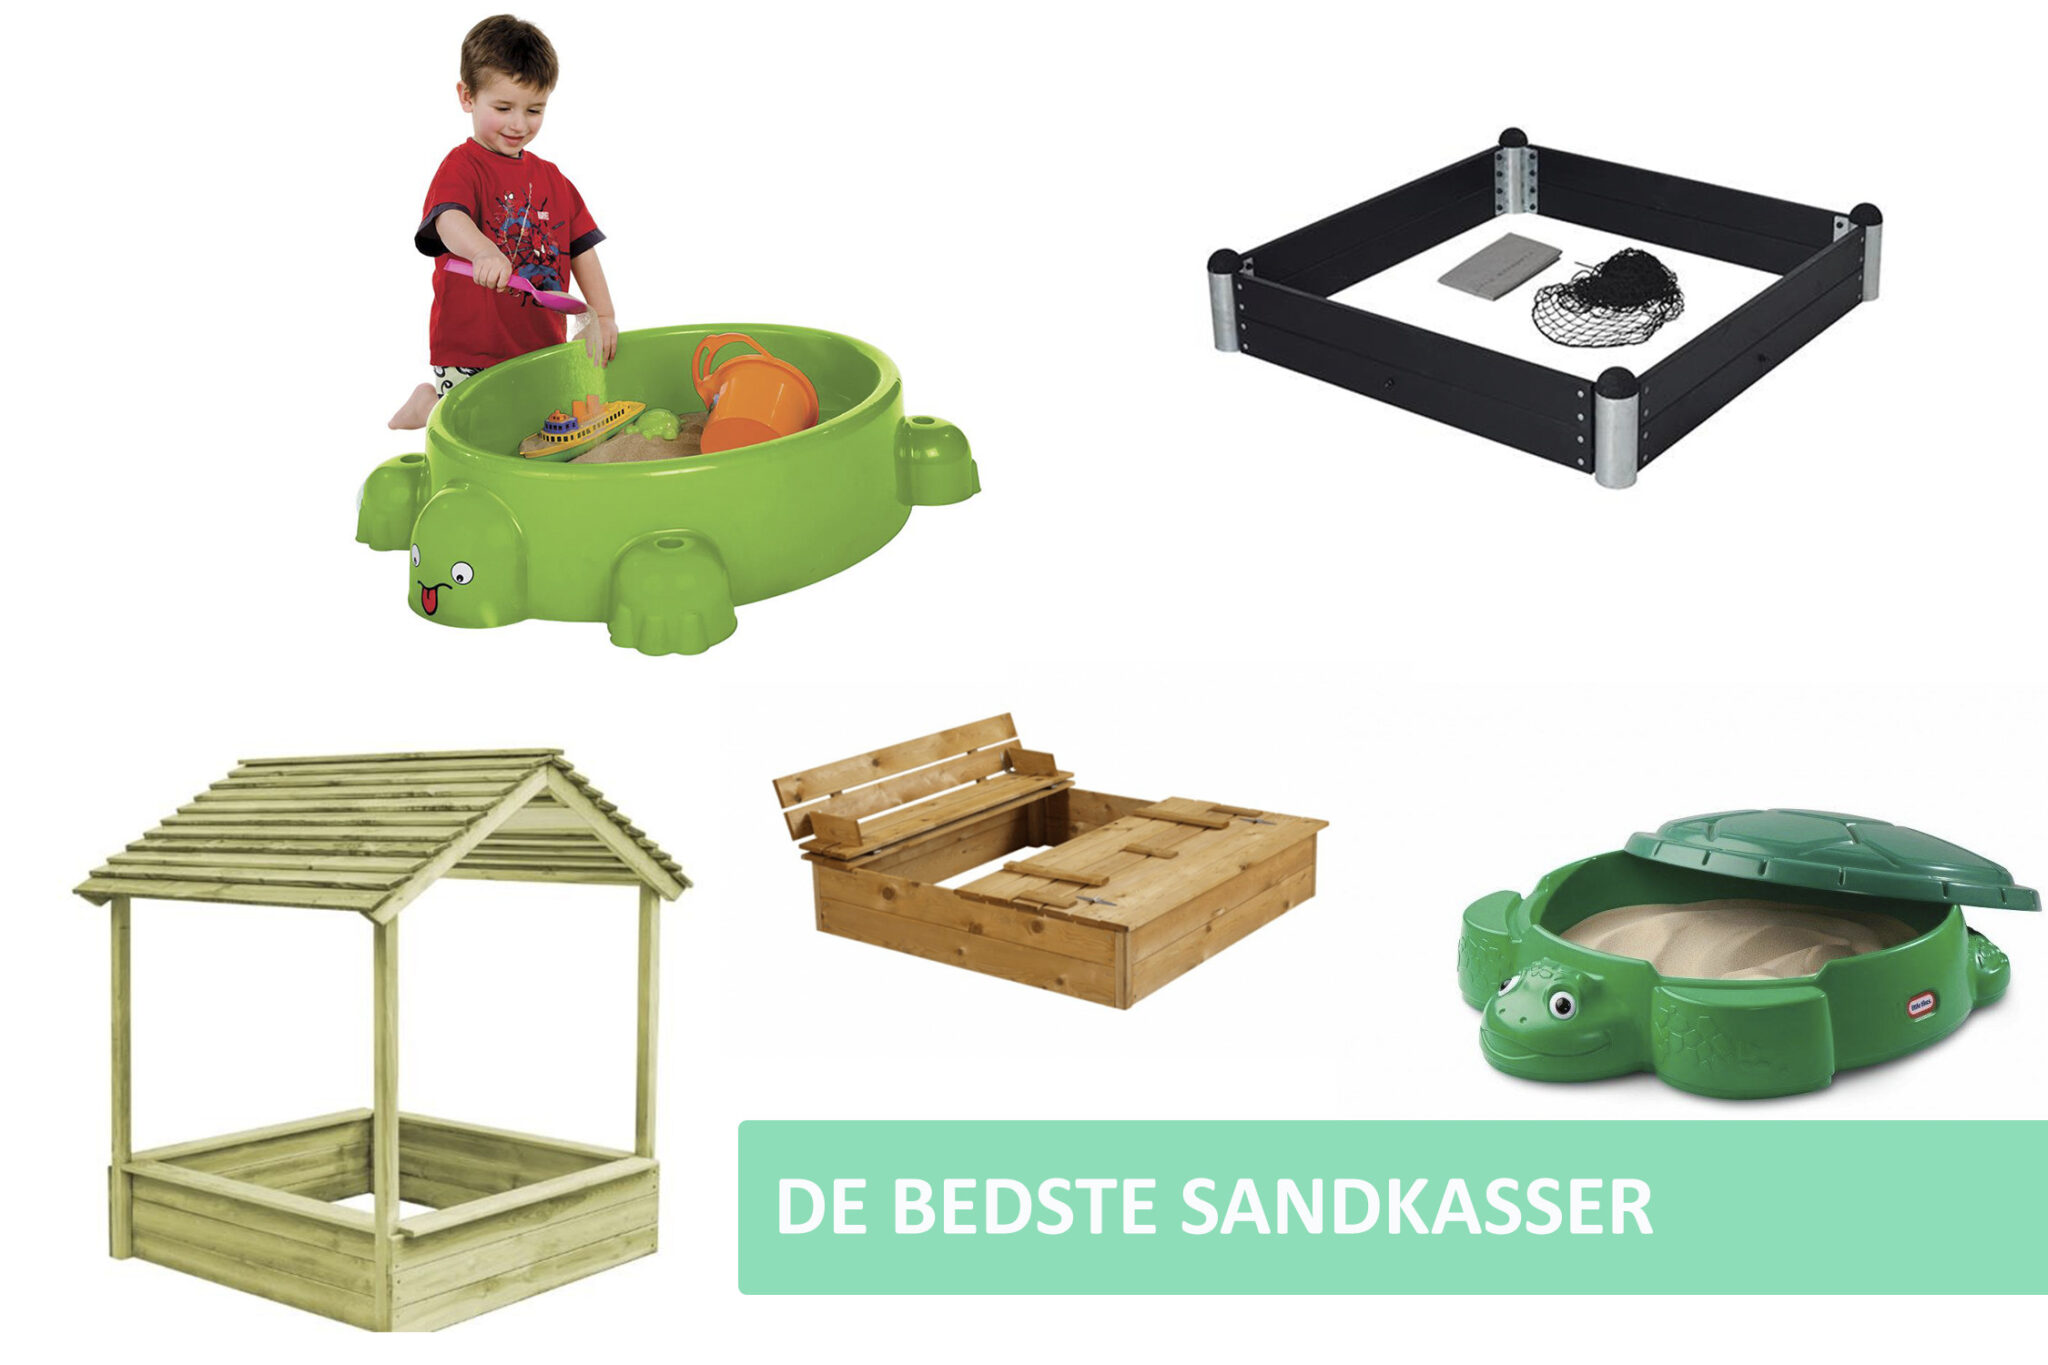 Sandkasse guide cover